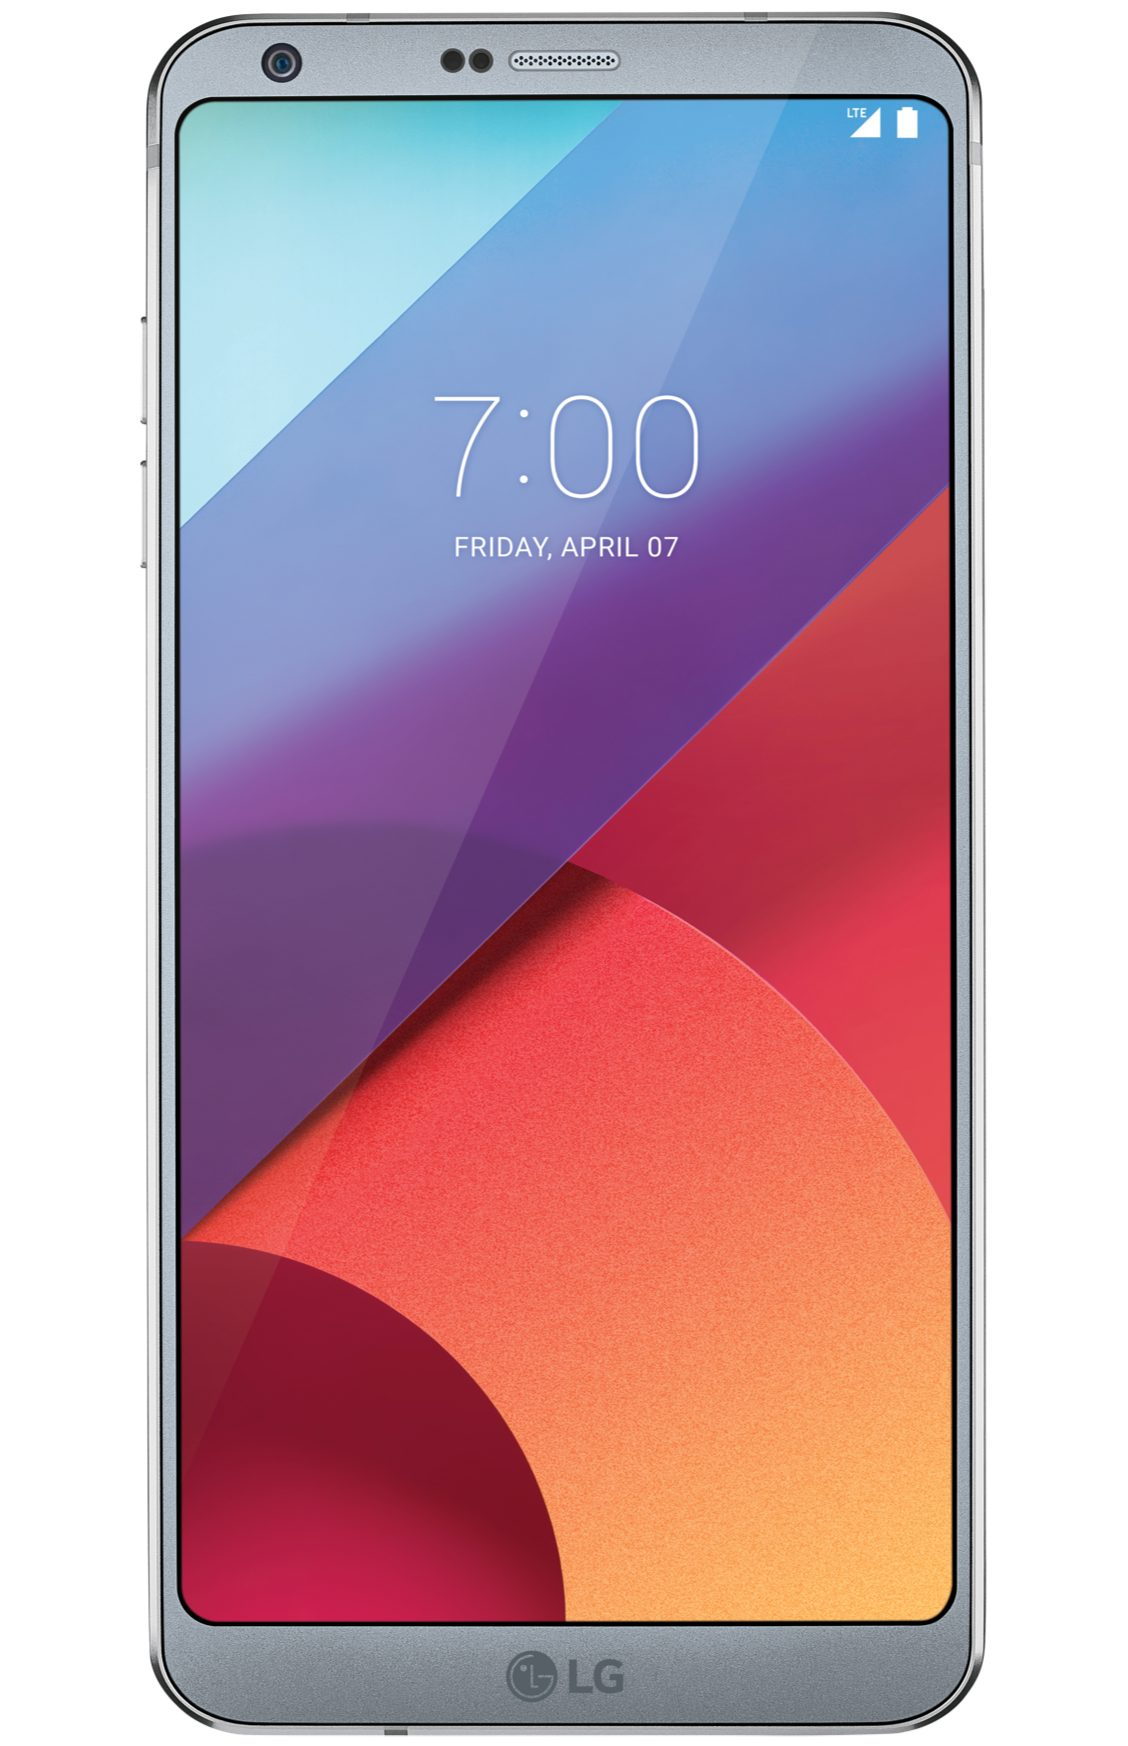 Save $70 on a new LG G6